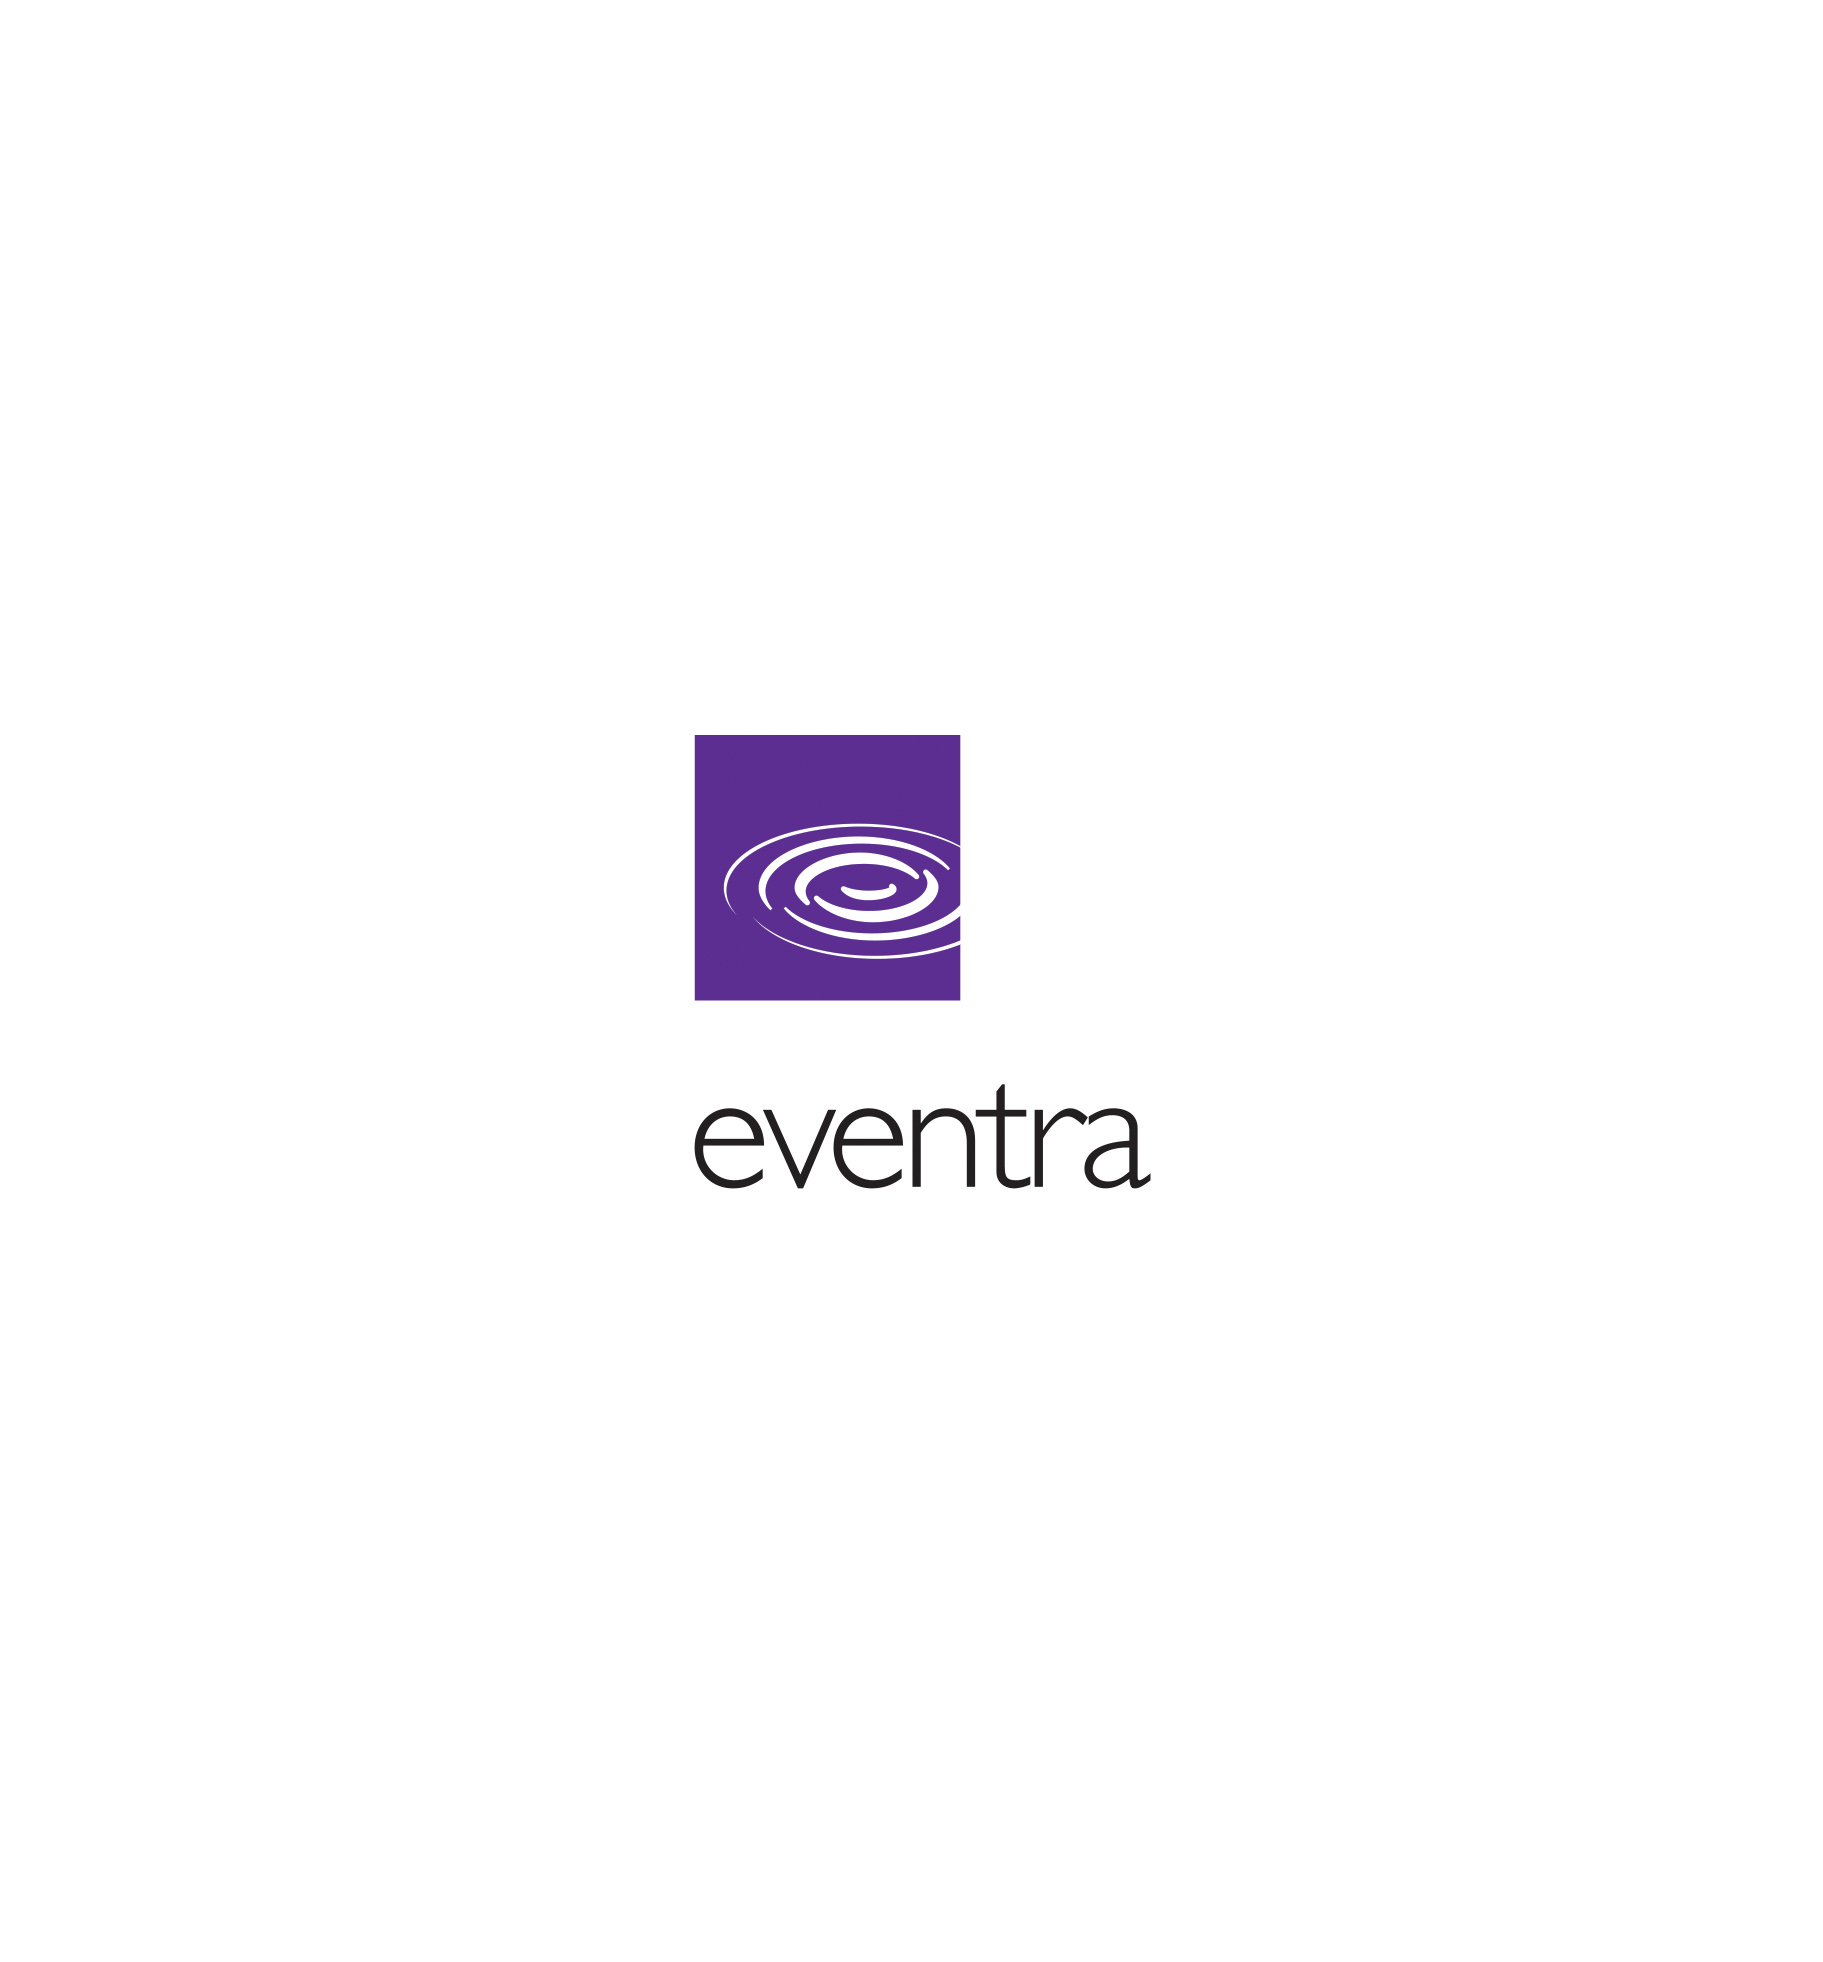 Eventra > Supplier relationship management software developer